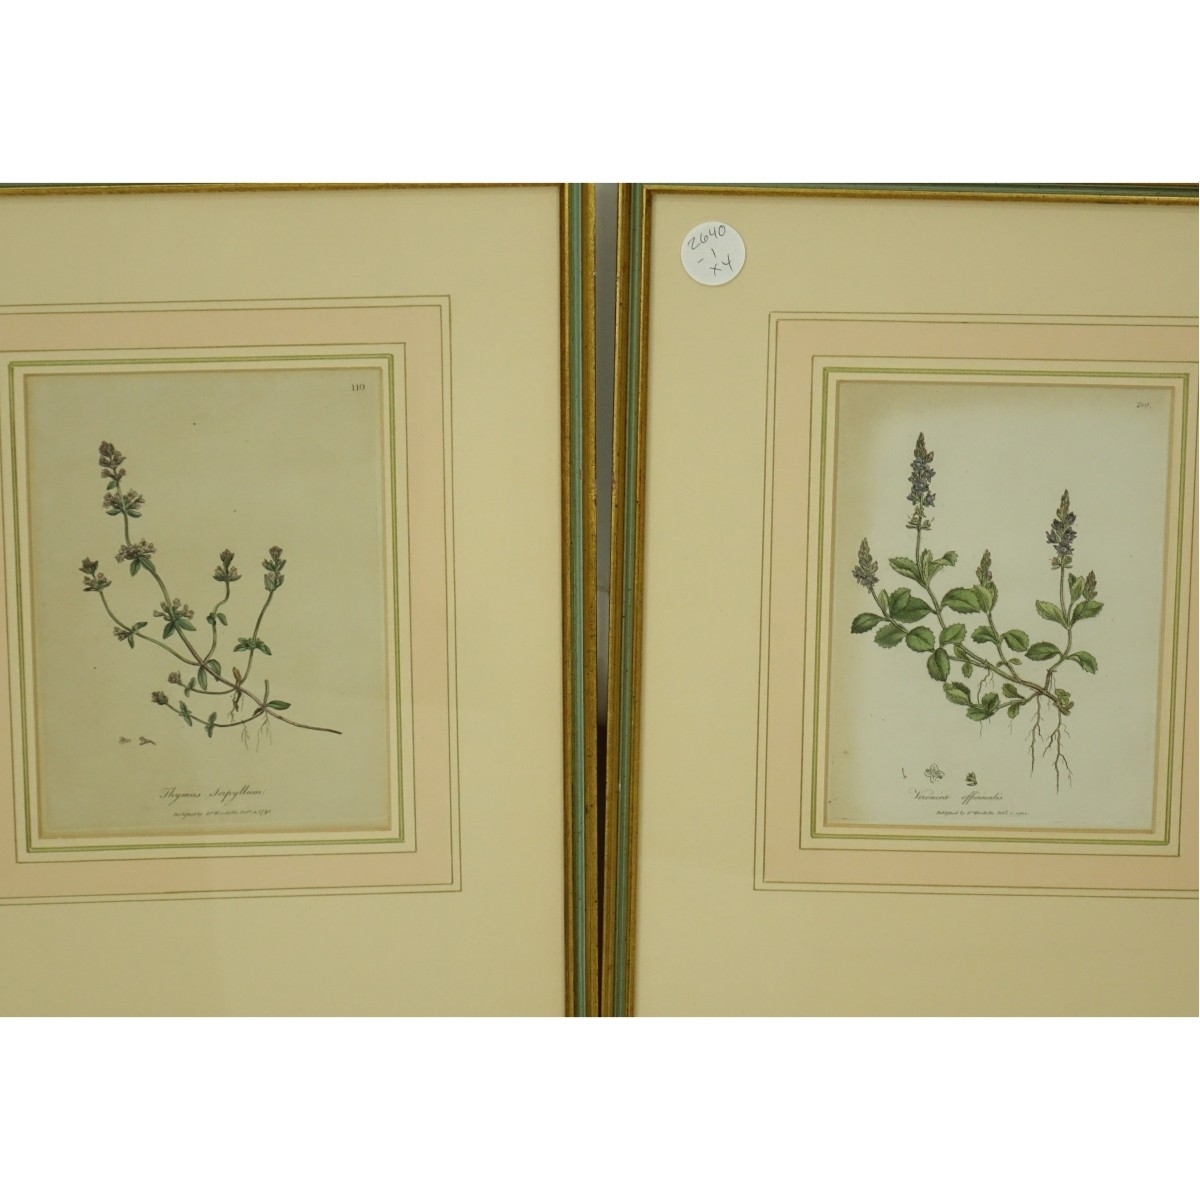 Alfred Adlard and Dr Woodville Botanical Prints